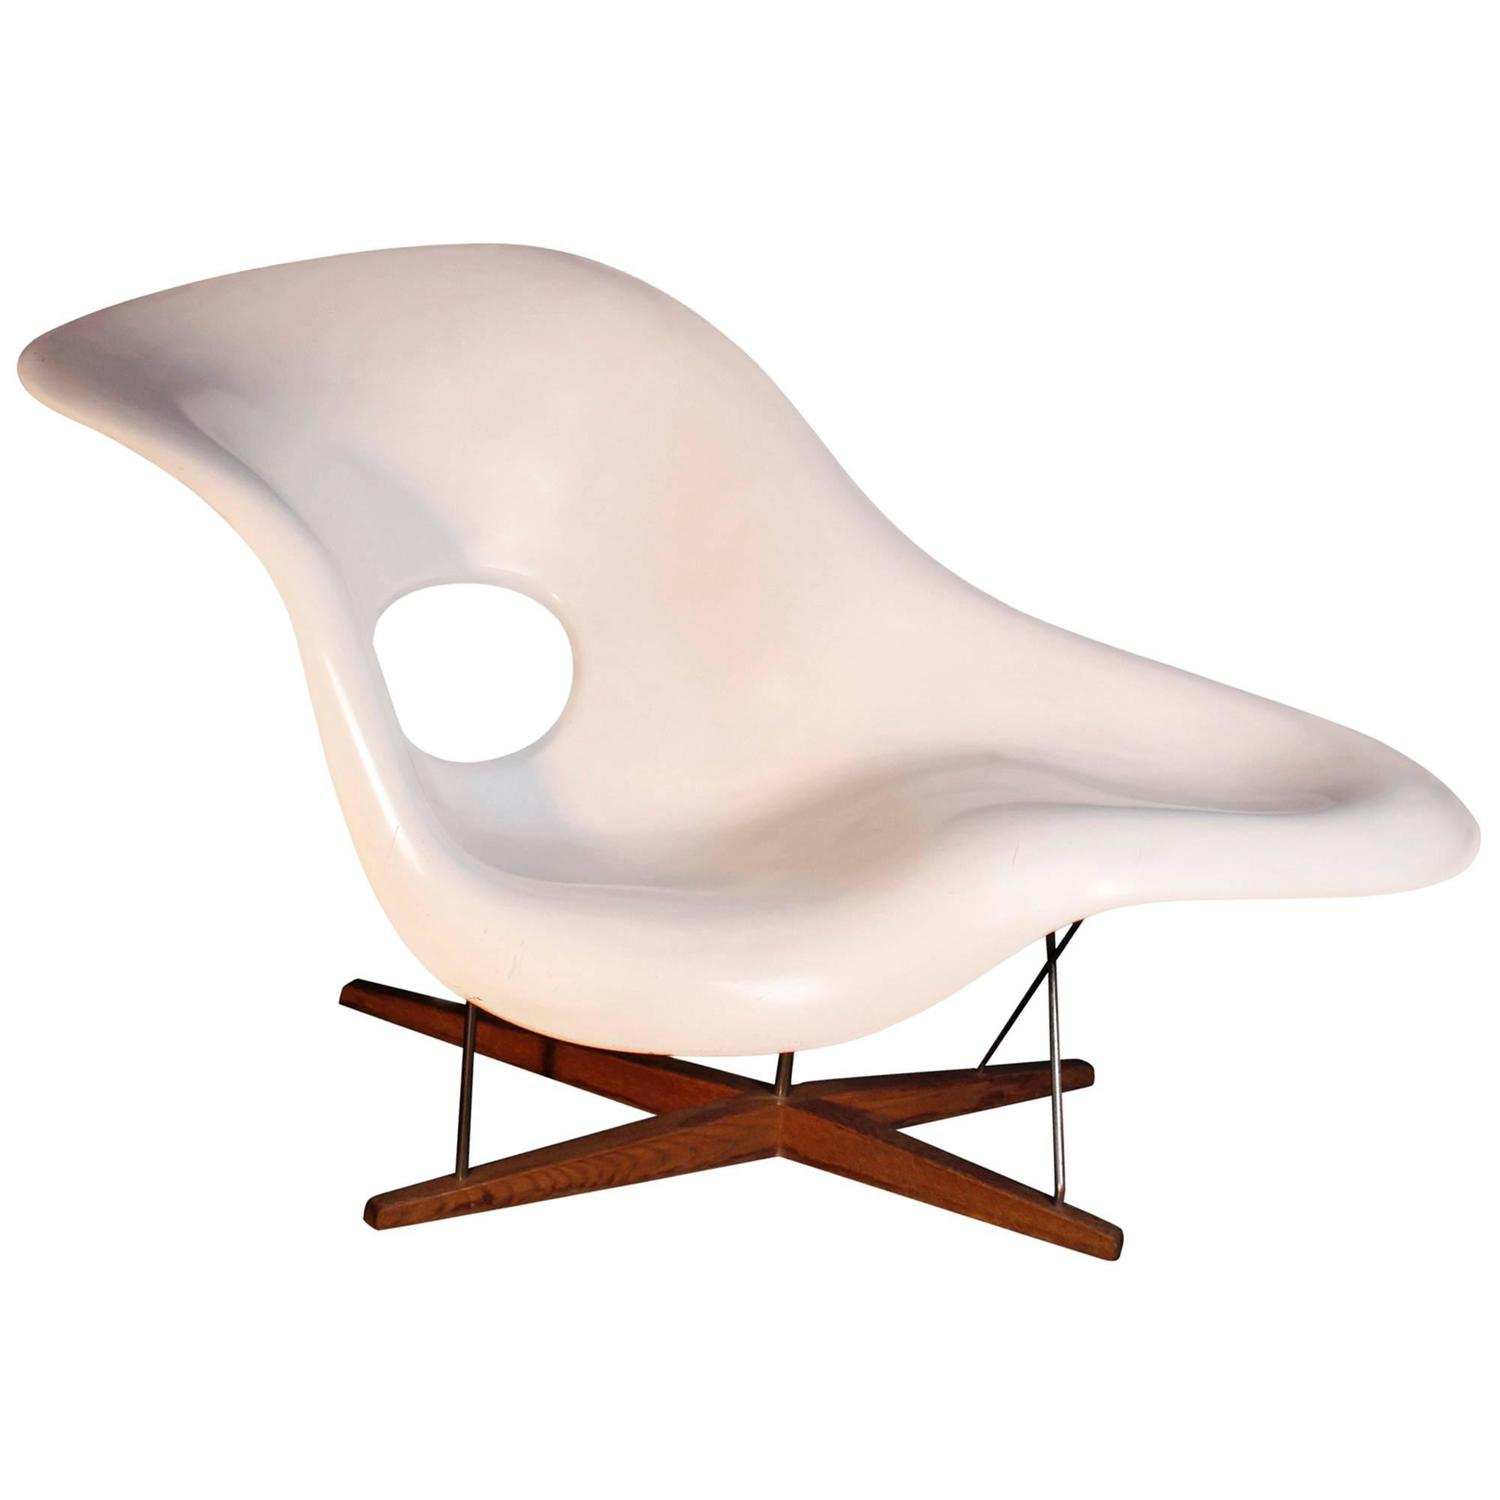 quot la chaise quot charles eames chaise longue for sale at 1stdibs